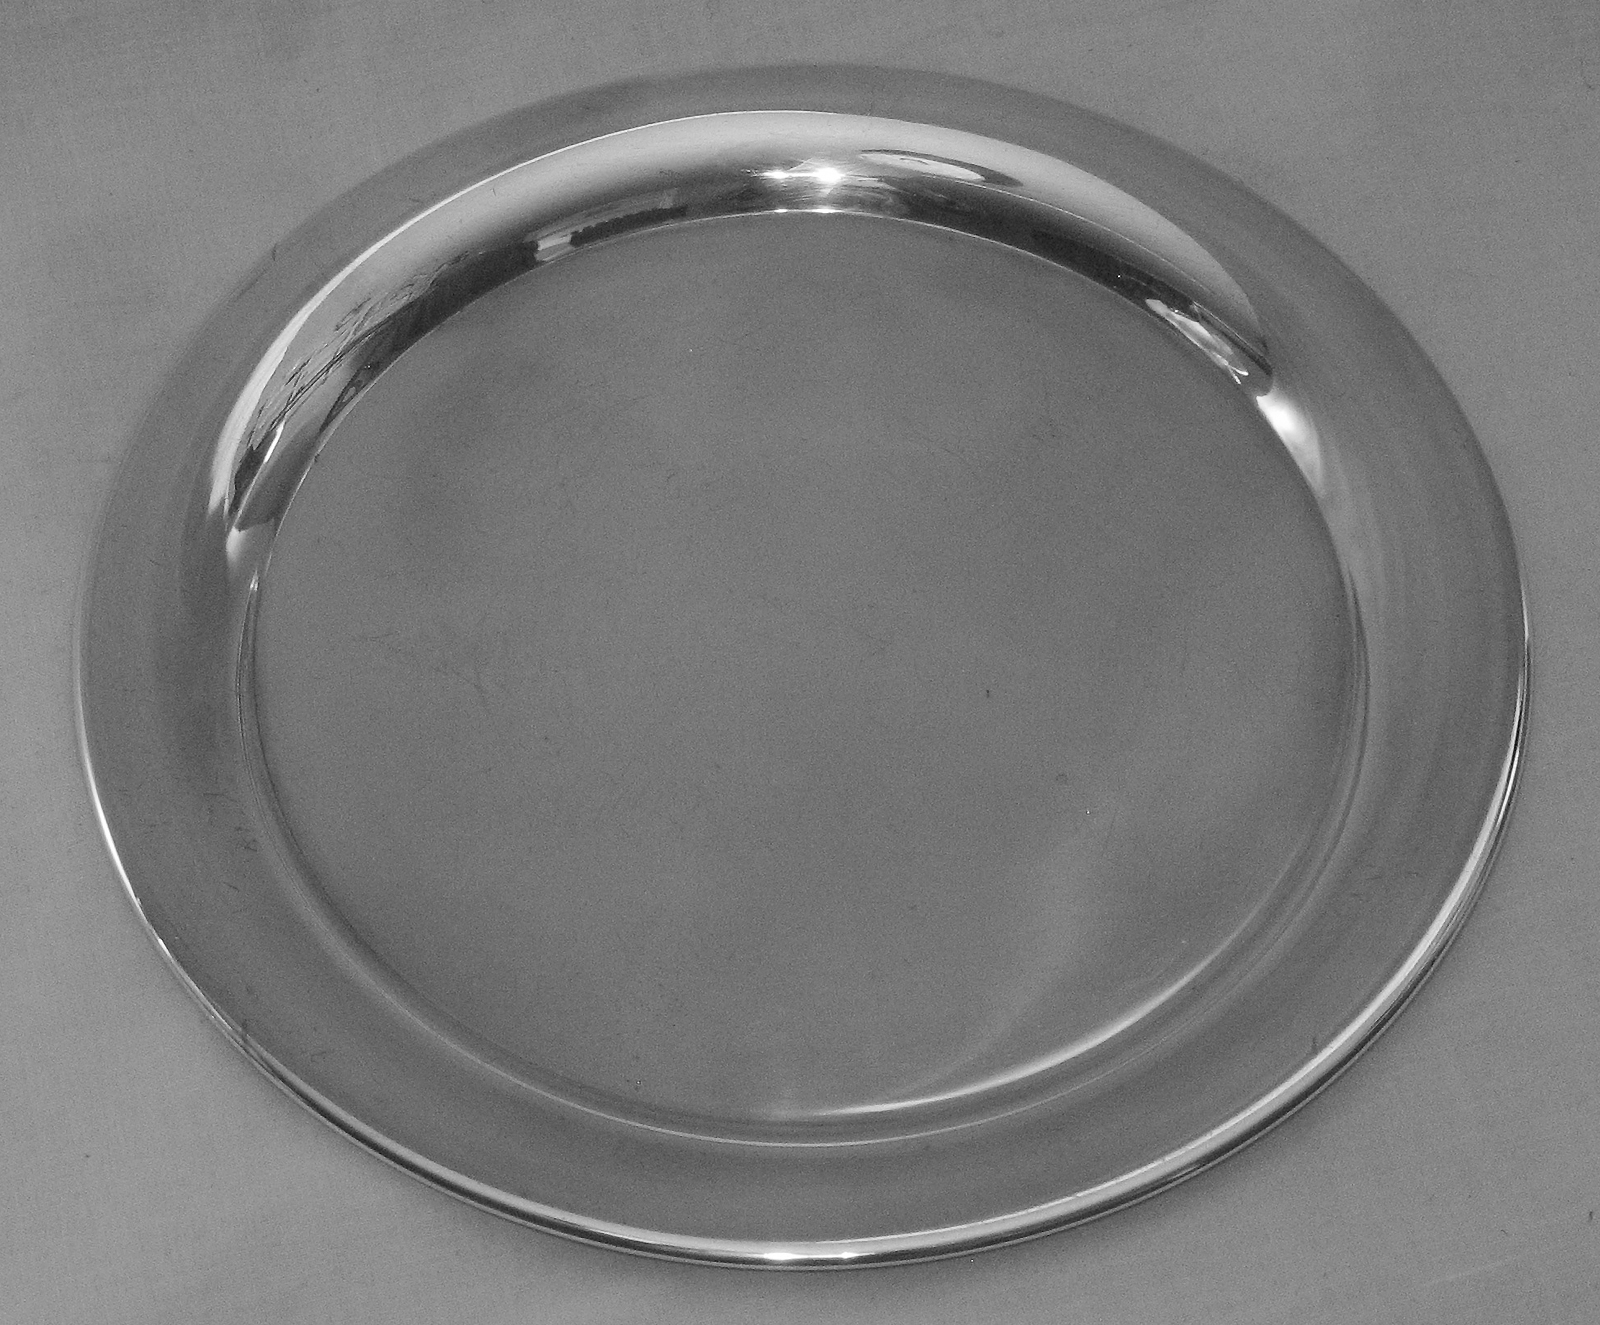 an electroplated large dinner plate platter for sale classifieds. Black Bedroom Furniture Sets. Home Design Ideas